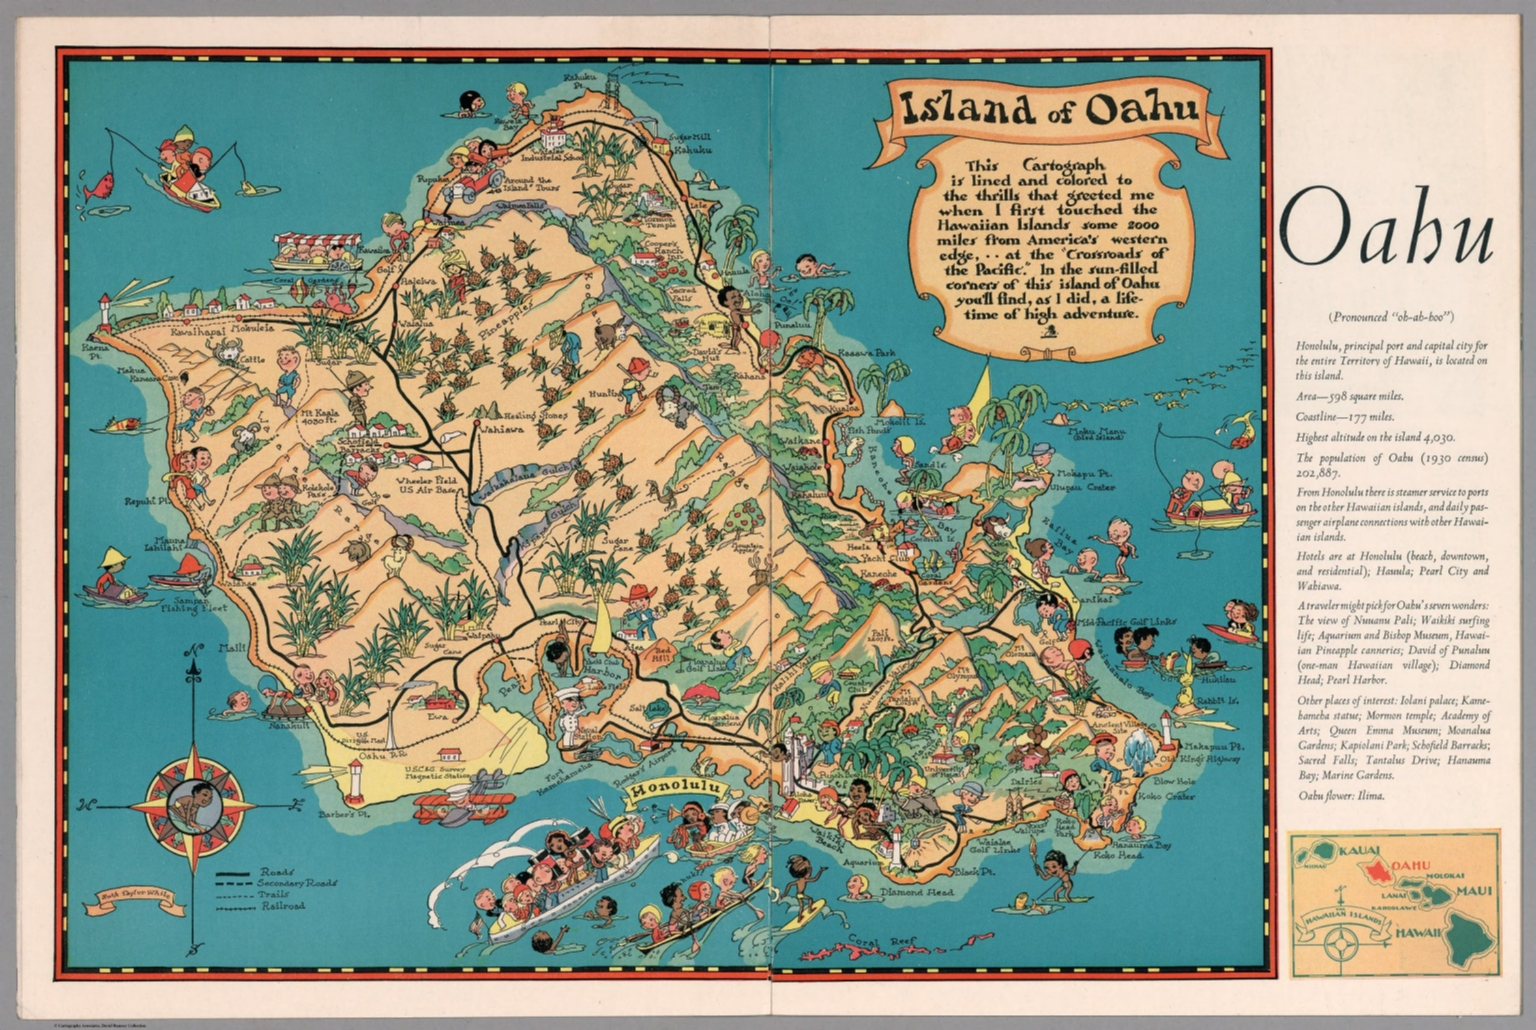 Oahu David Rumsey Historical Map Collection